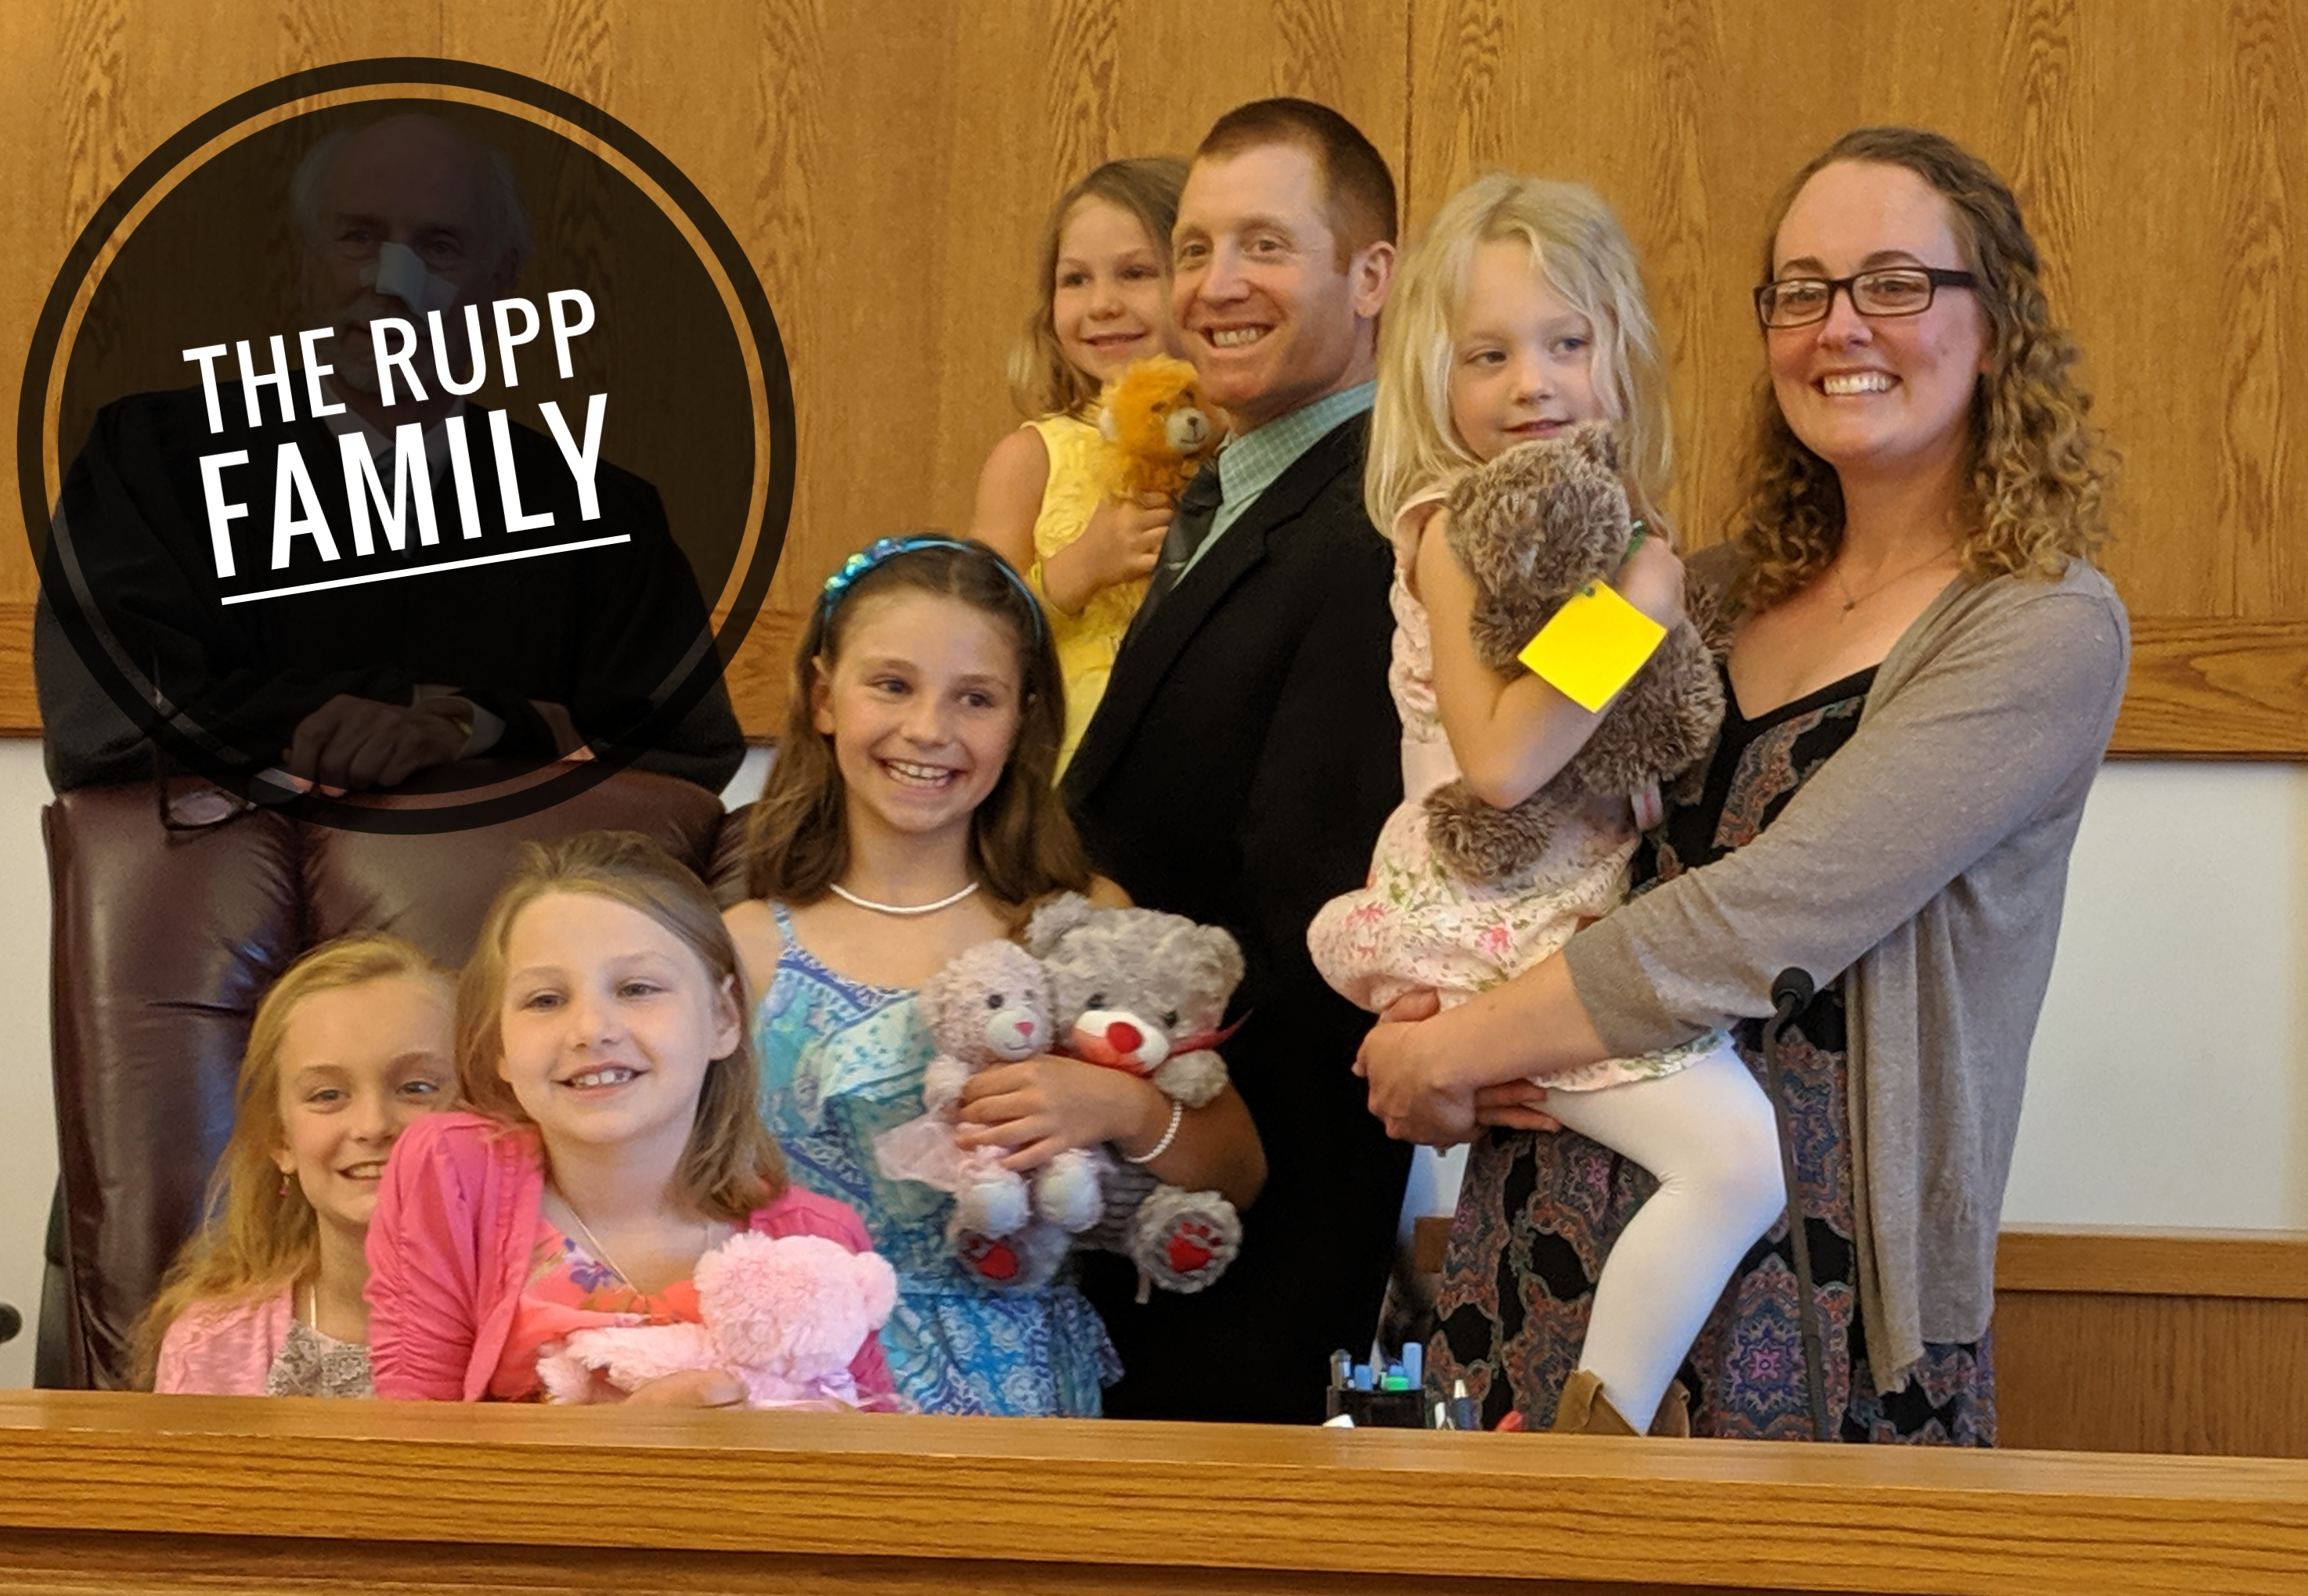 An Update on the Rupp Family